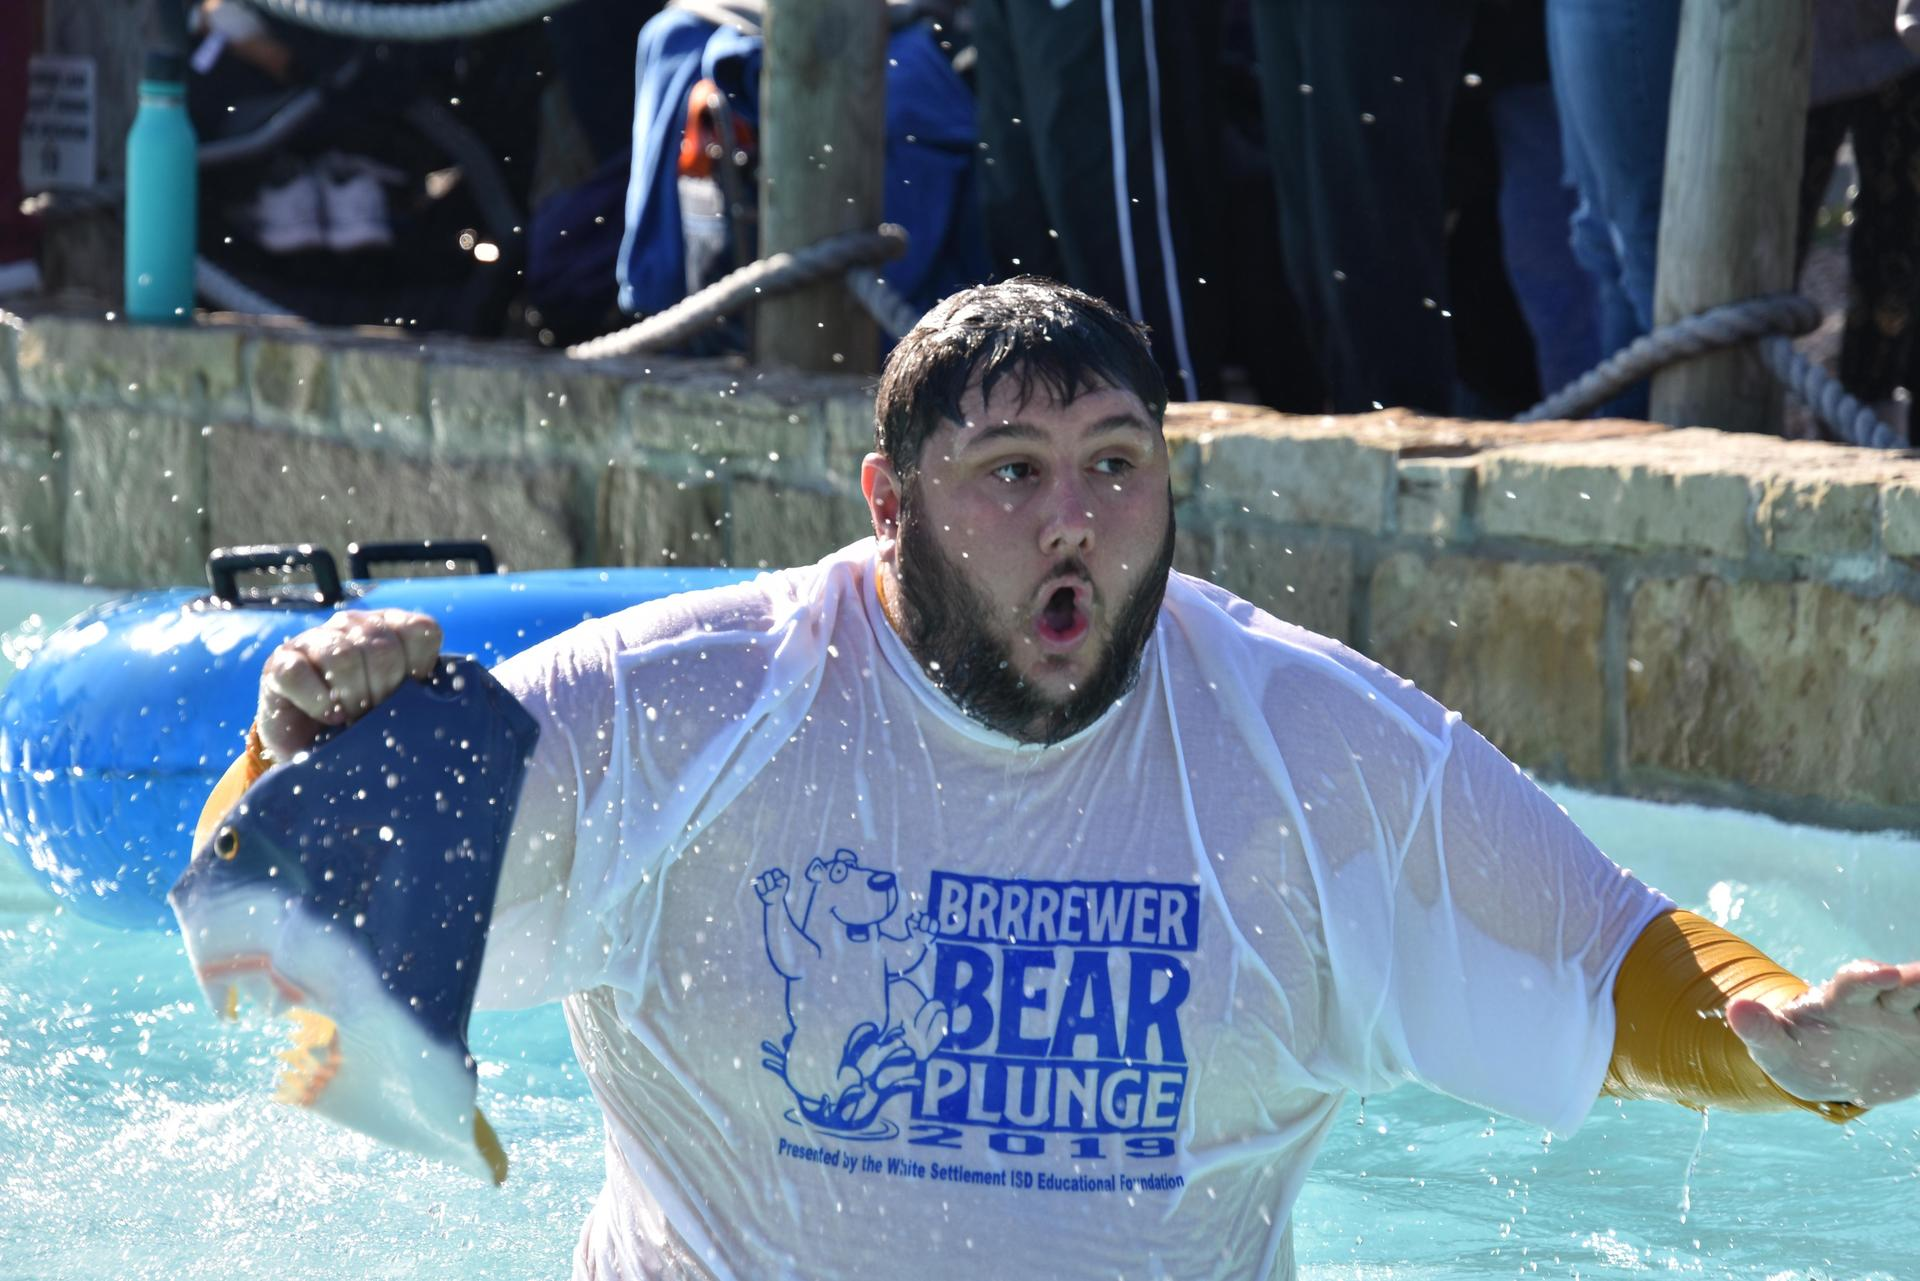 Foundation raises more than $8,000 during BRRRewer Bear Plunge